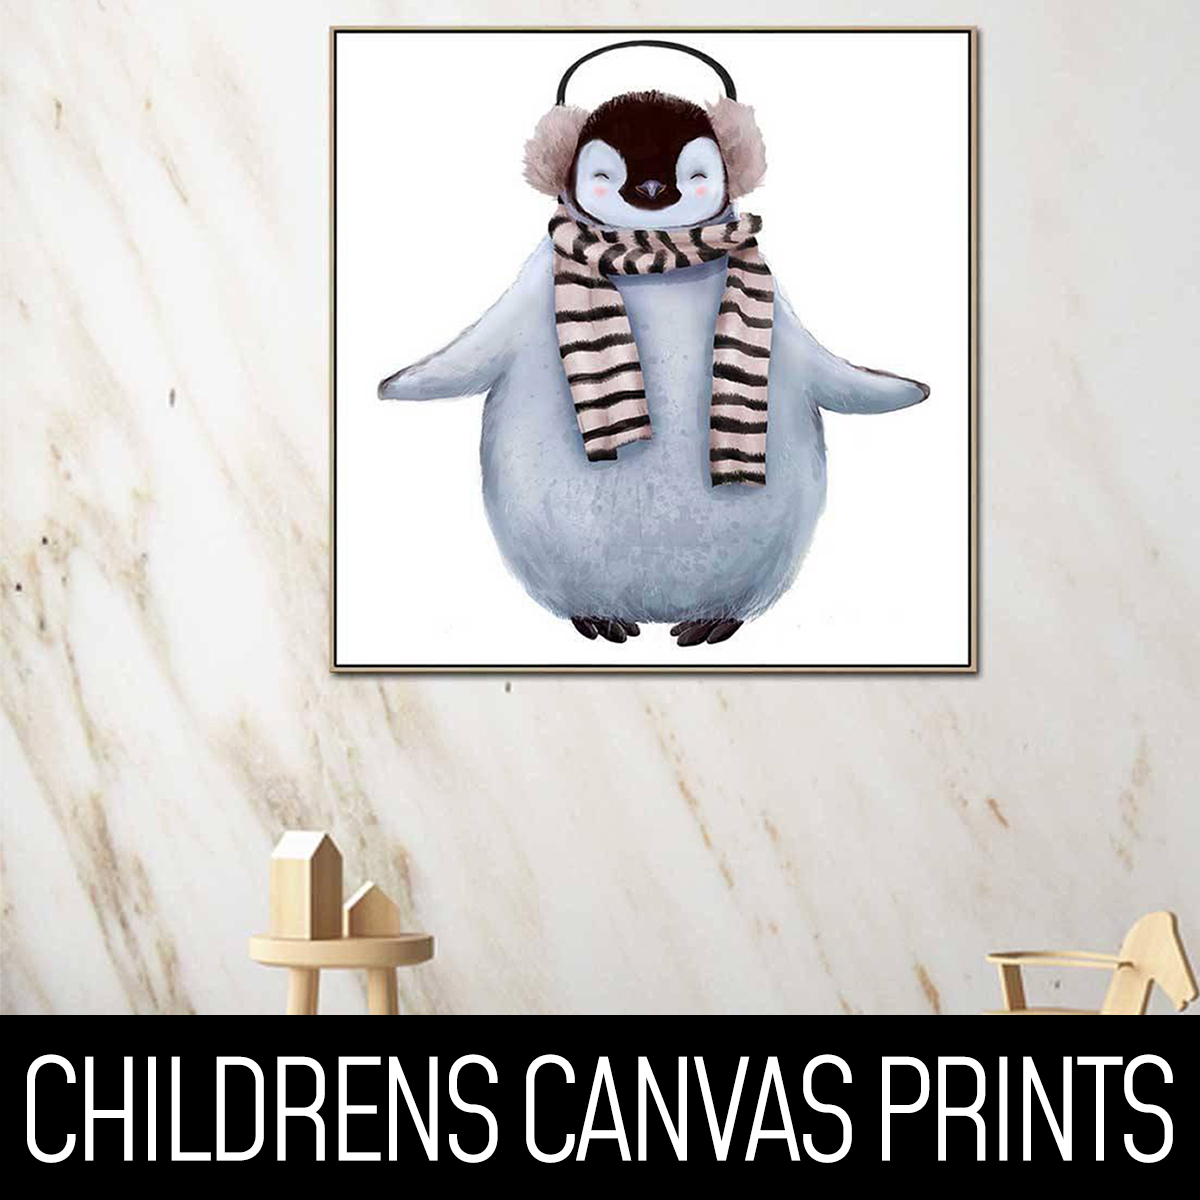 Childrens Canvas Prints